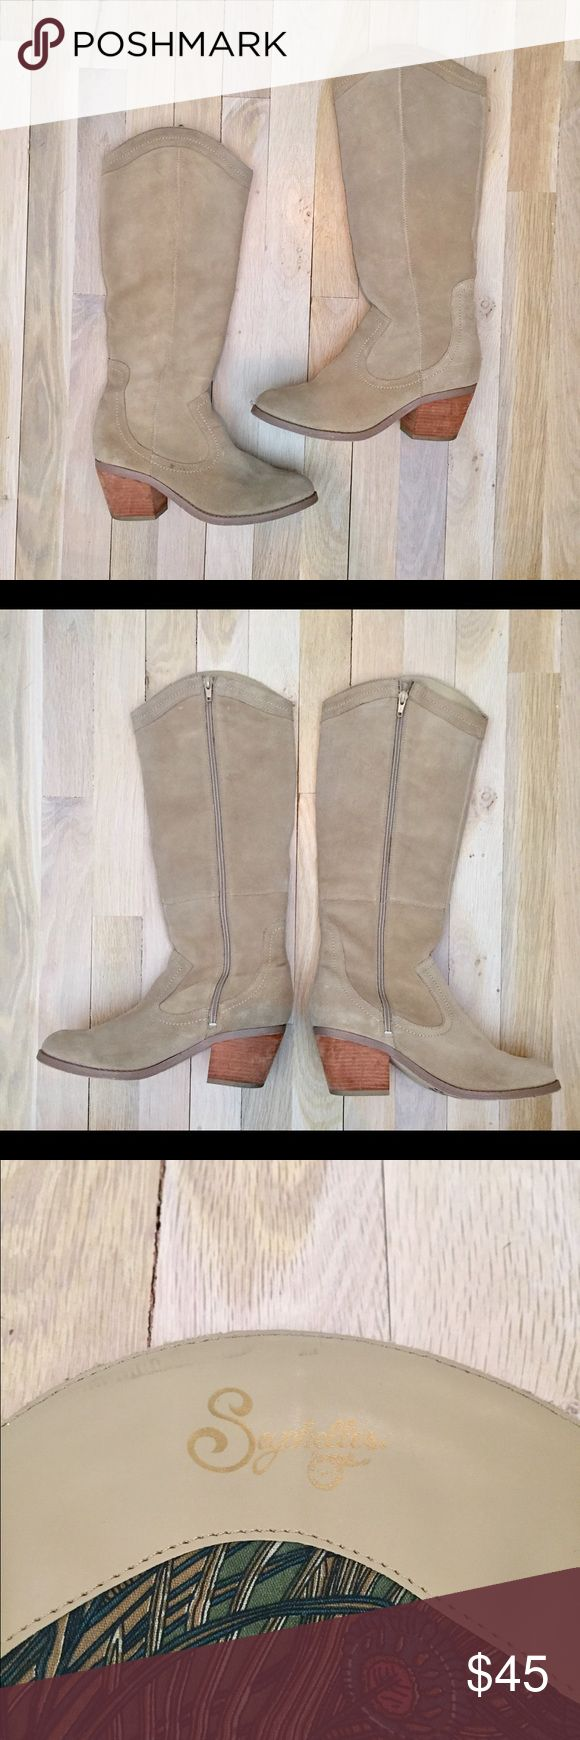 Seychelles Boots These boots were made for walking! These Seychelles boots are Cowgirl boot inspired with a classy twist complete with tan suede exterior and wood heel. Seychelles Shoes Heeled Boots